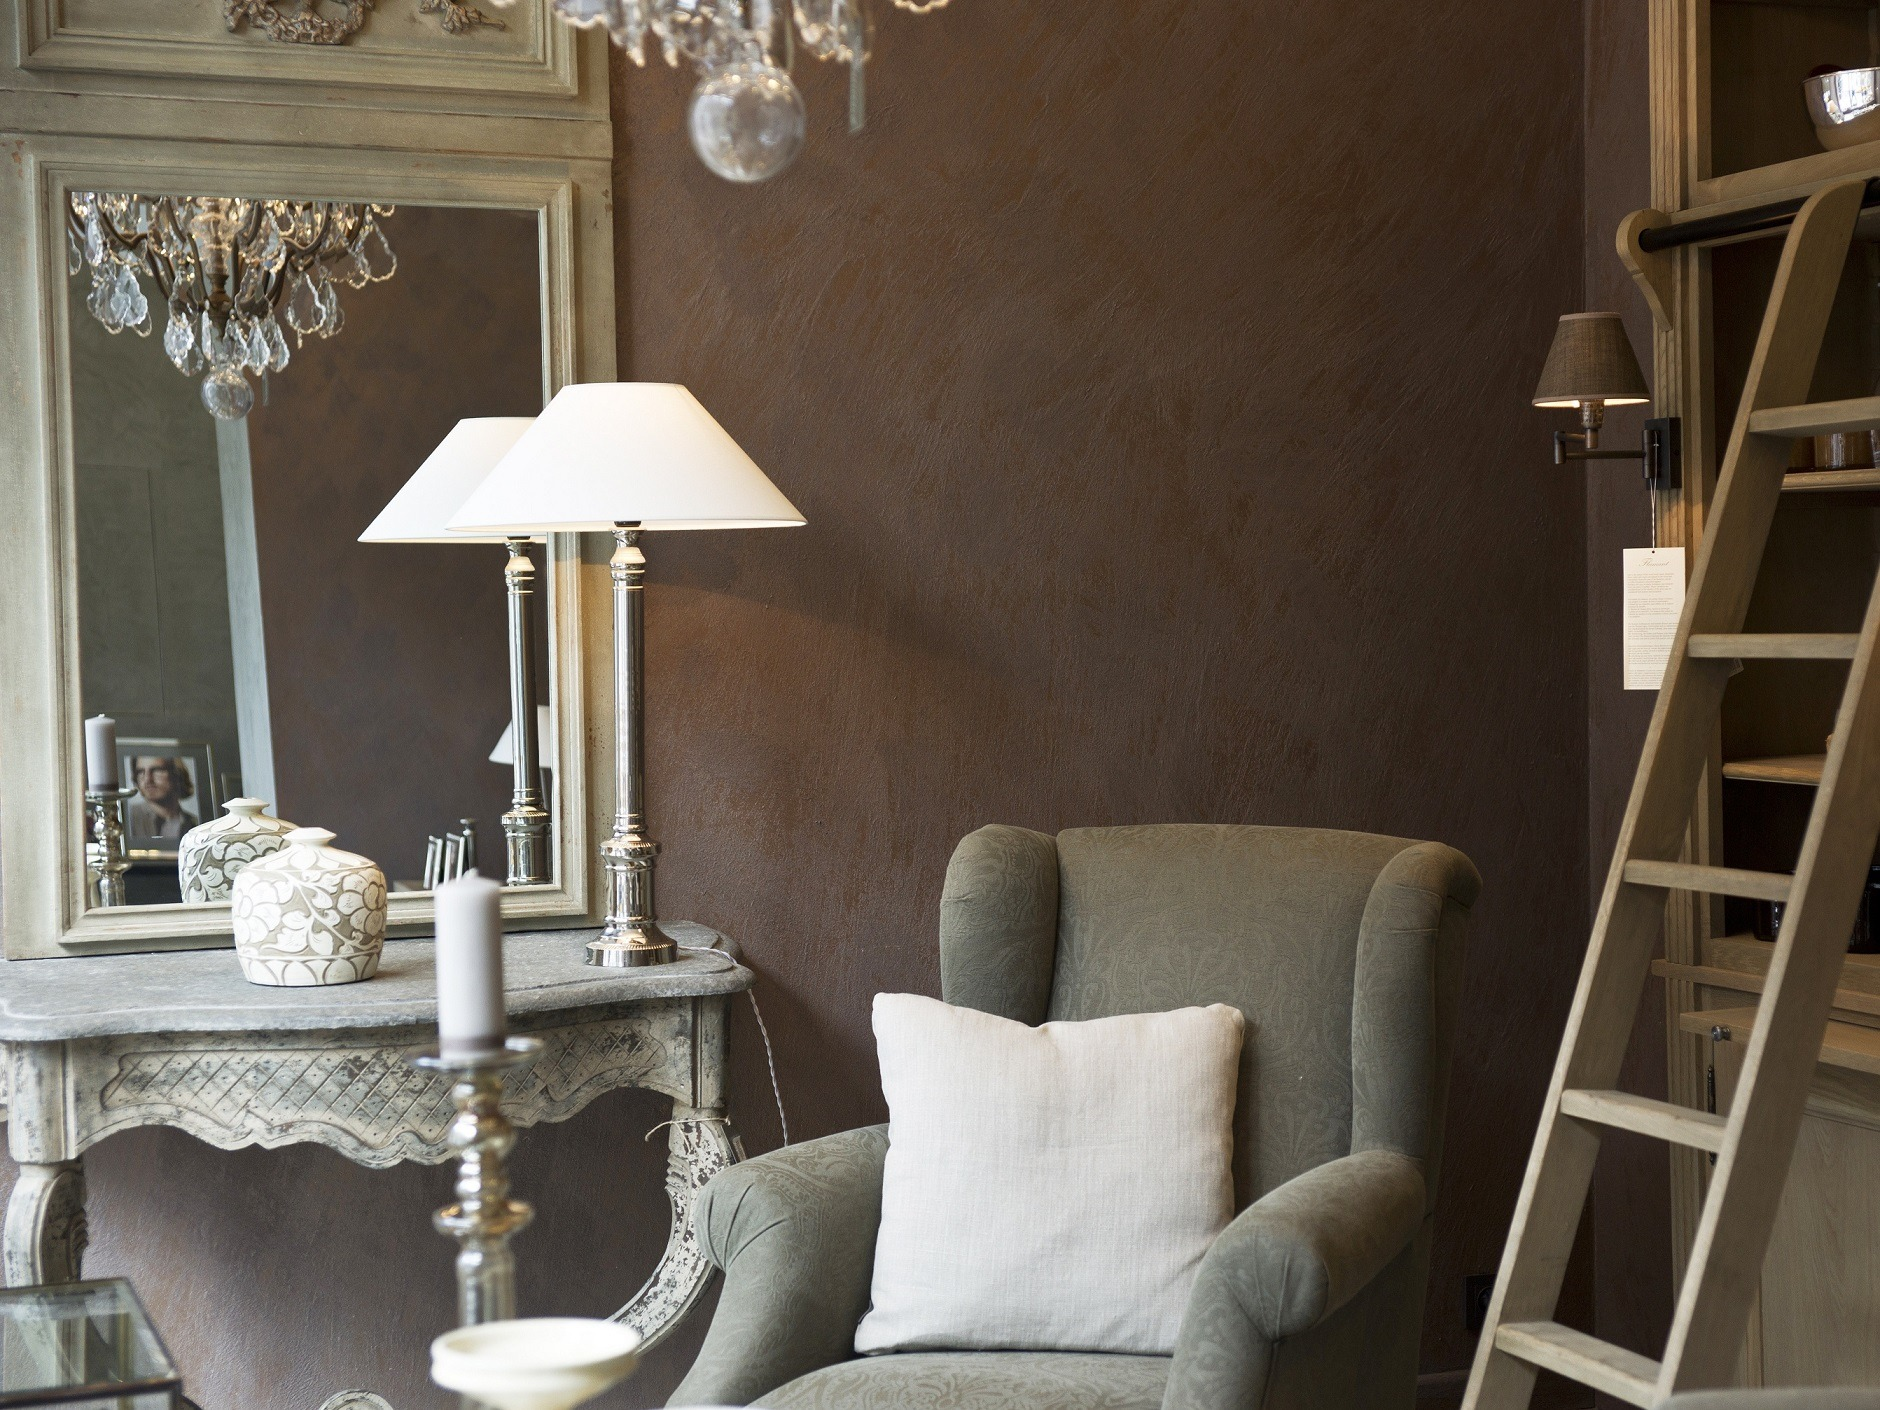 How To Create A Modern Victorian Interior Scheme The Idealist